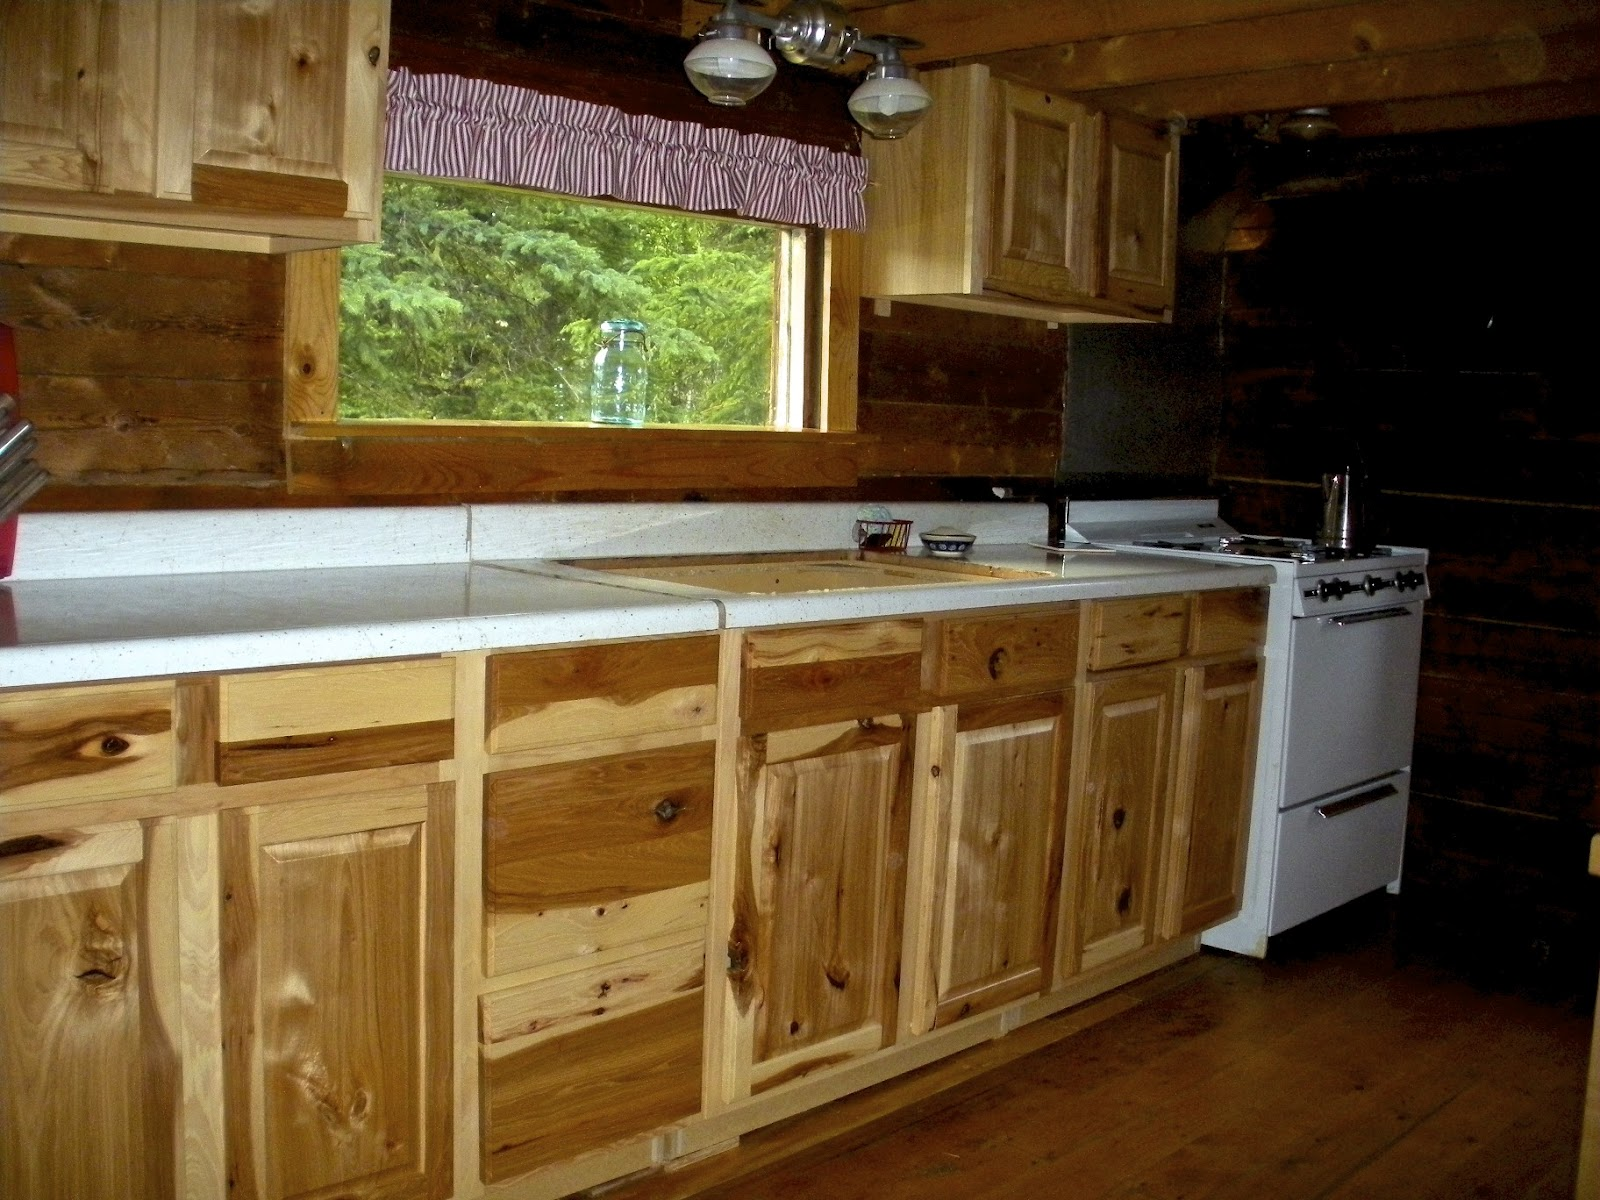 Lowes kitchen cabinets recommendation of the day home for Quality kitchen cabinets